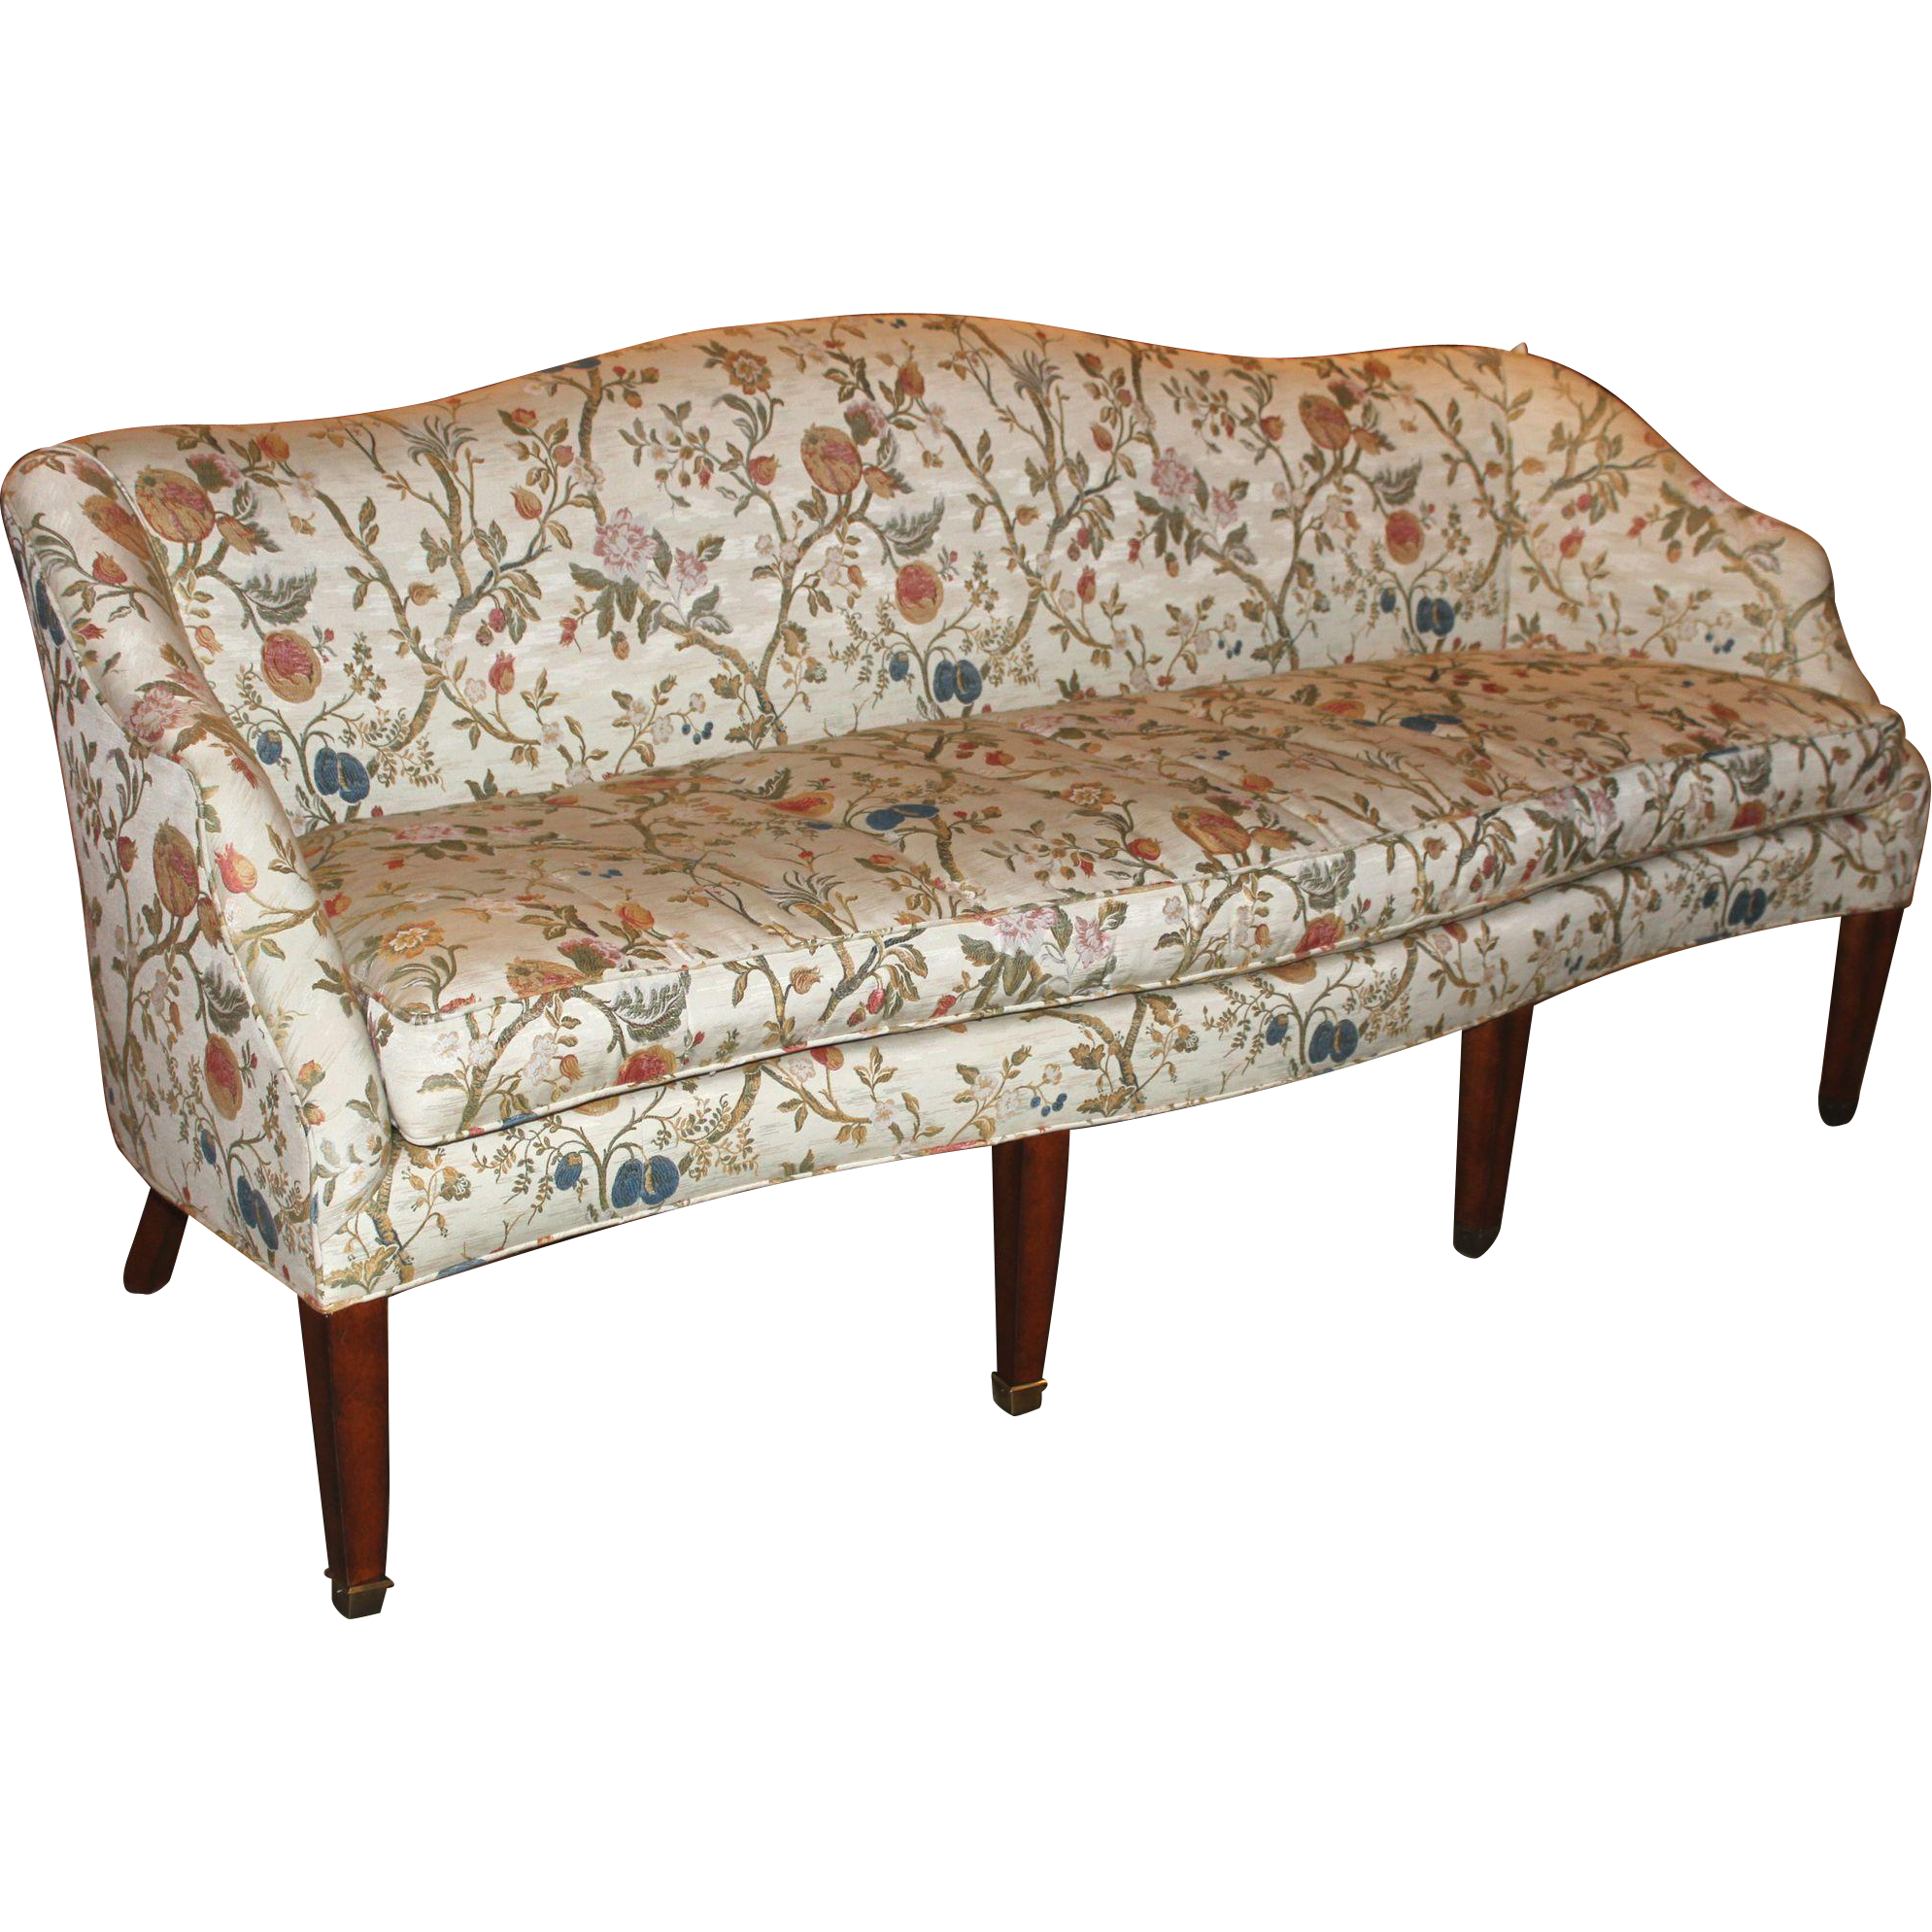 Edward ferrell lewis mittman hepplewhite style sofa with for Edward ferrell lewis mittman